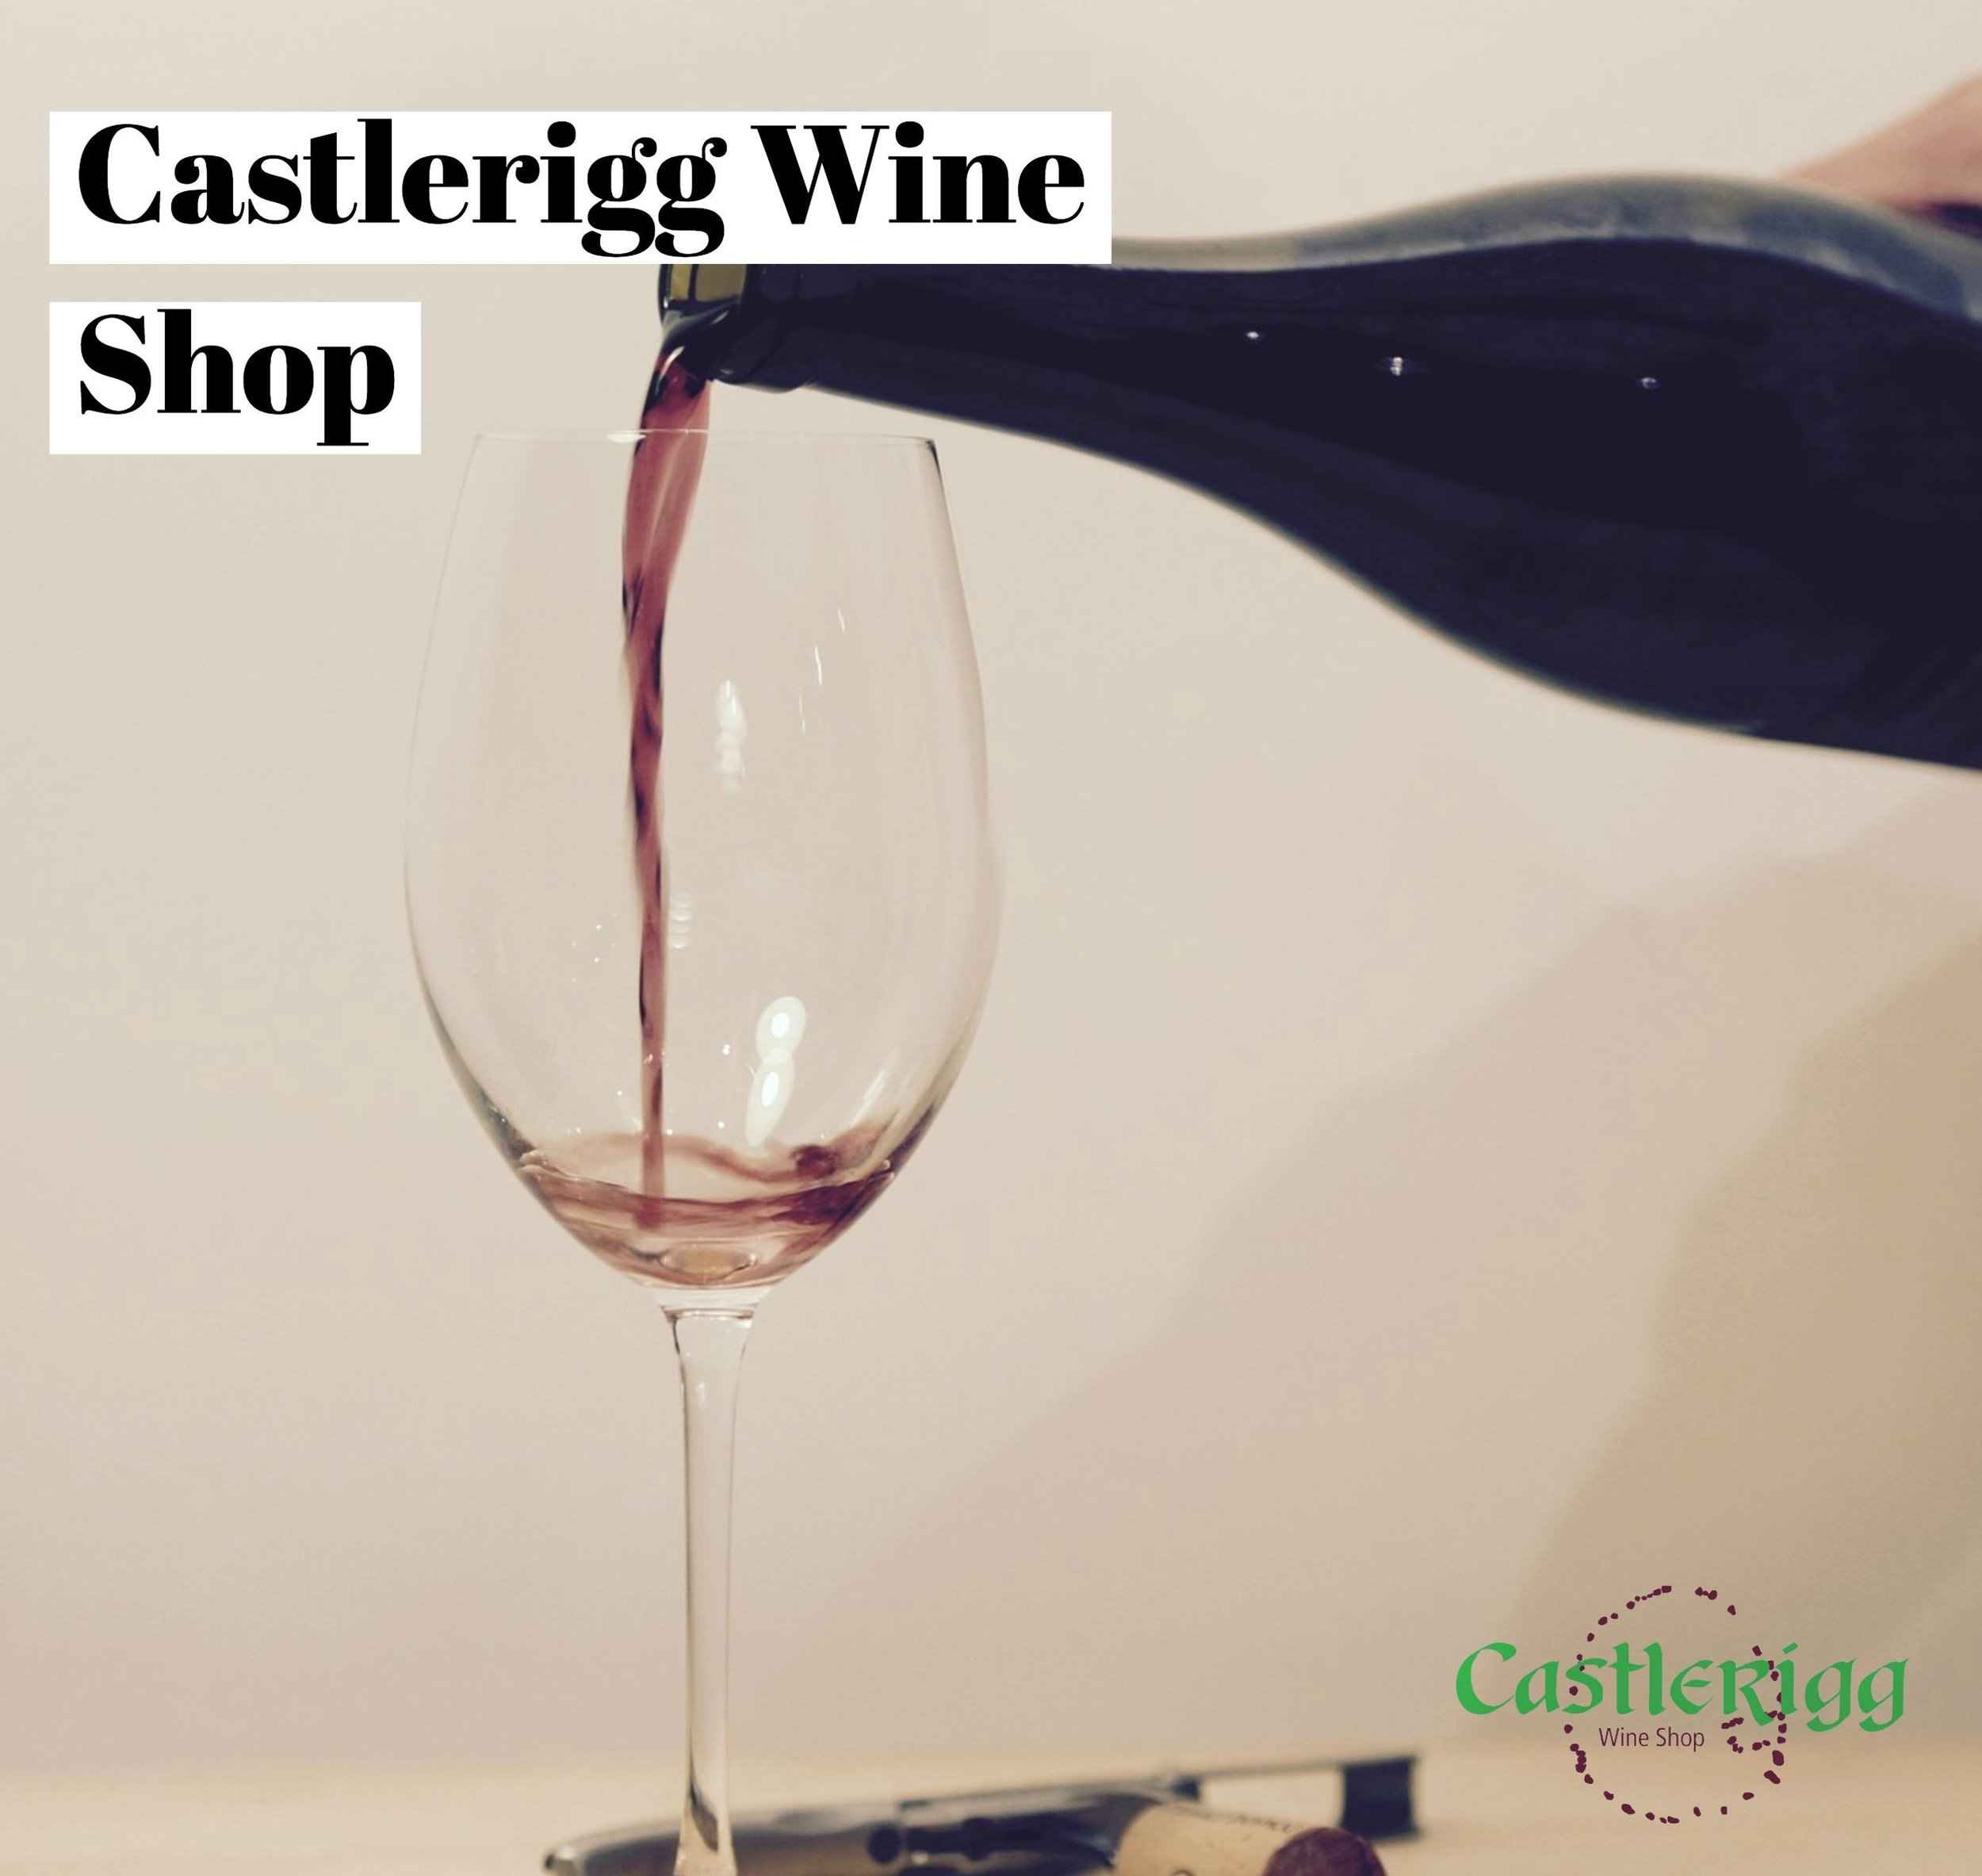 Castlerigg Wine Shop